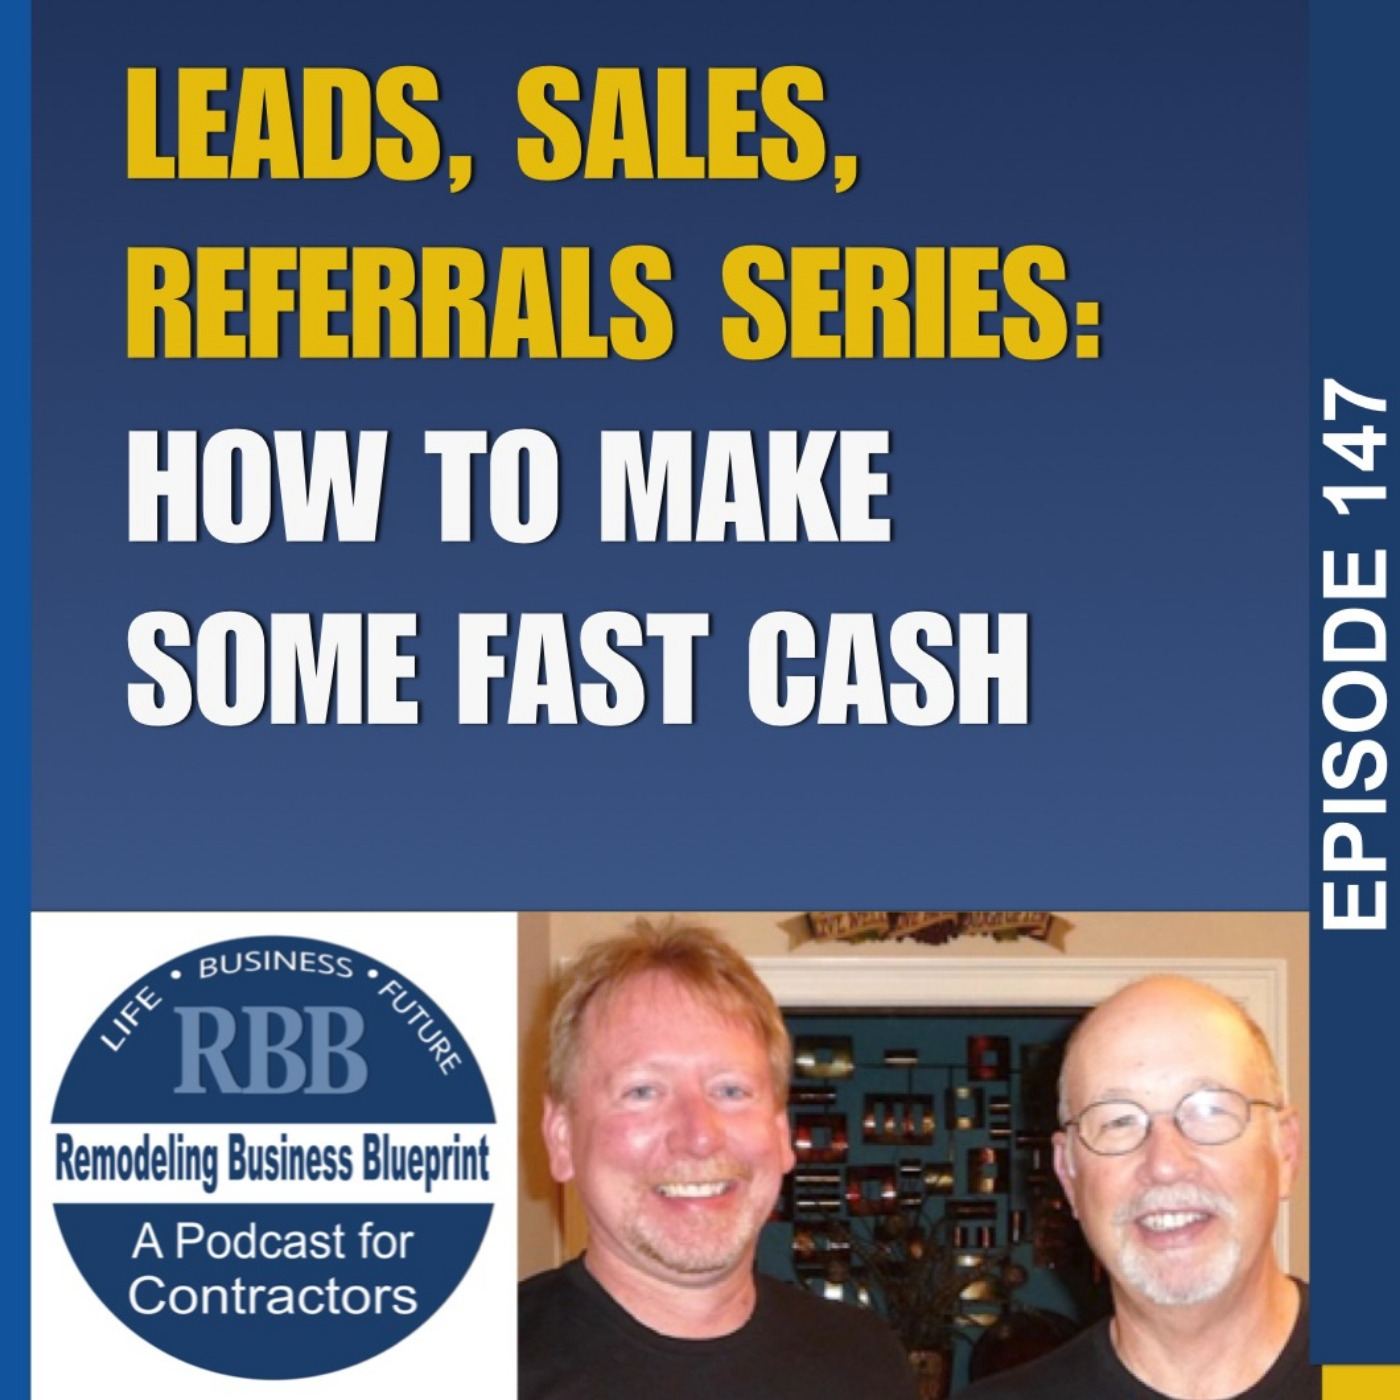 How To Make Some Fast Cash